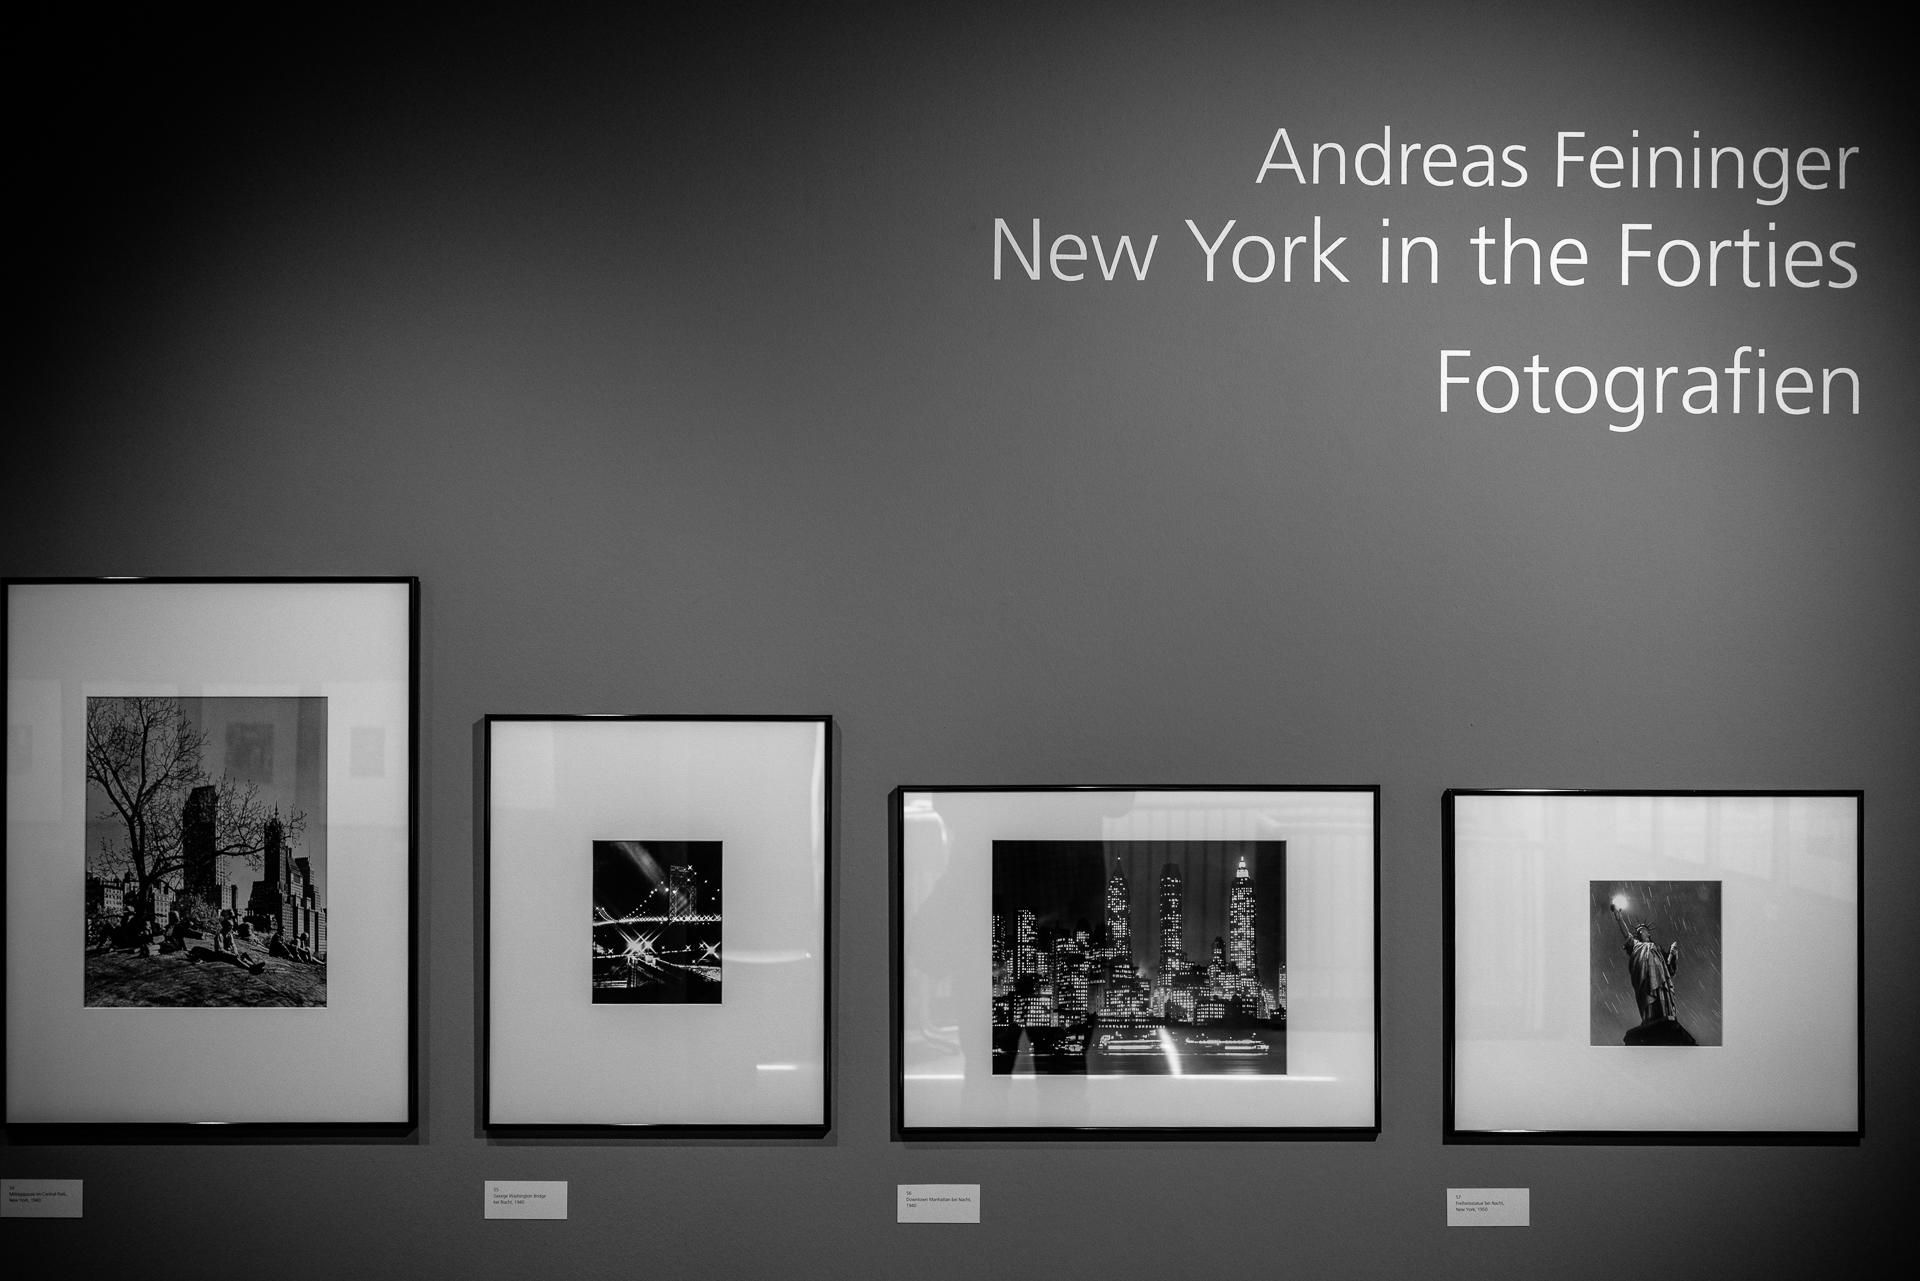 Andreas Feininger – New York in the Forties